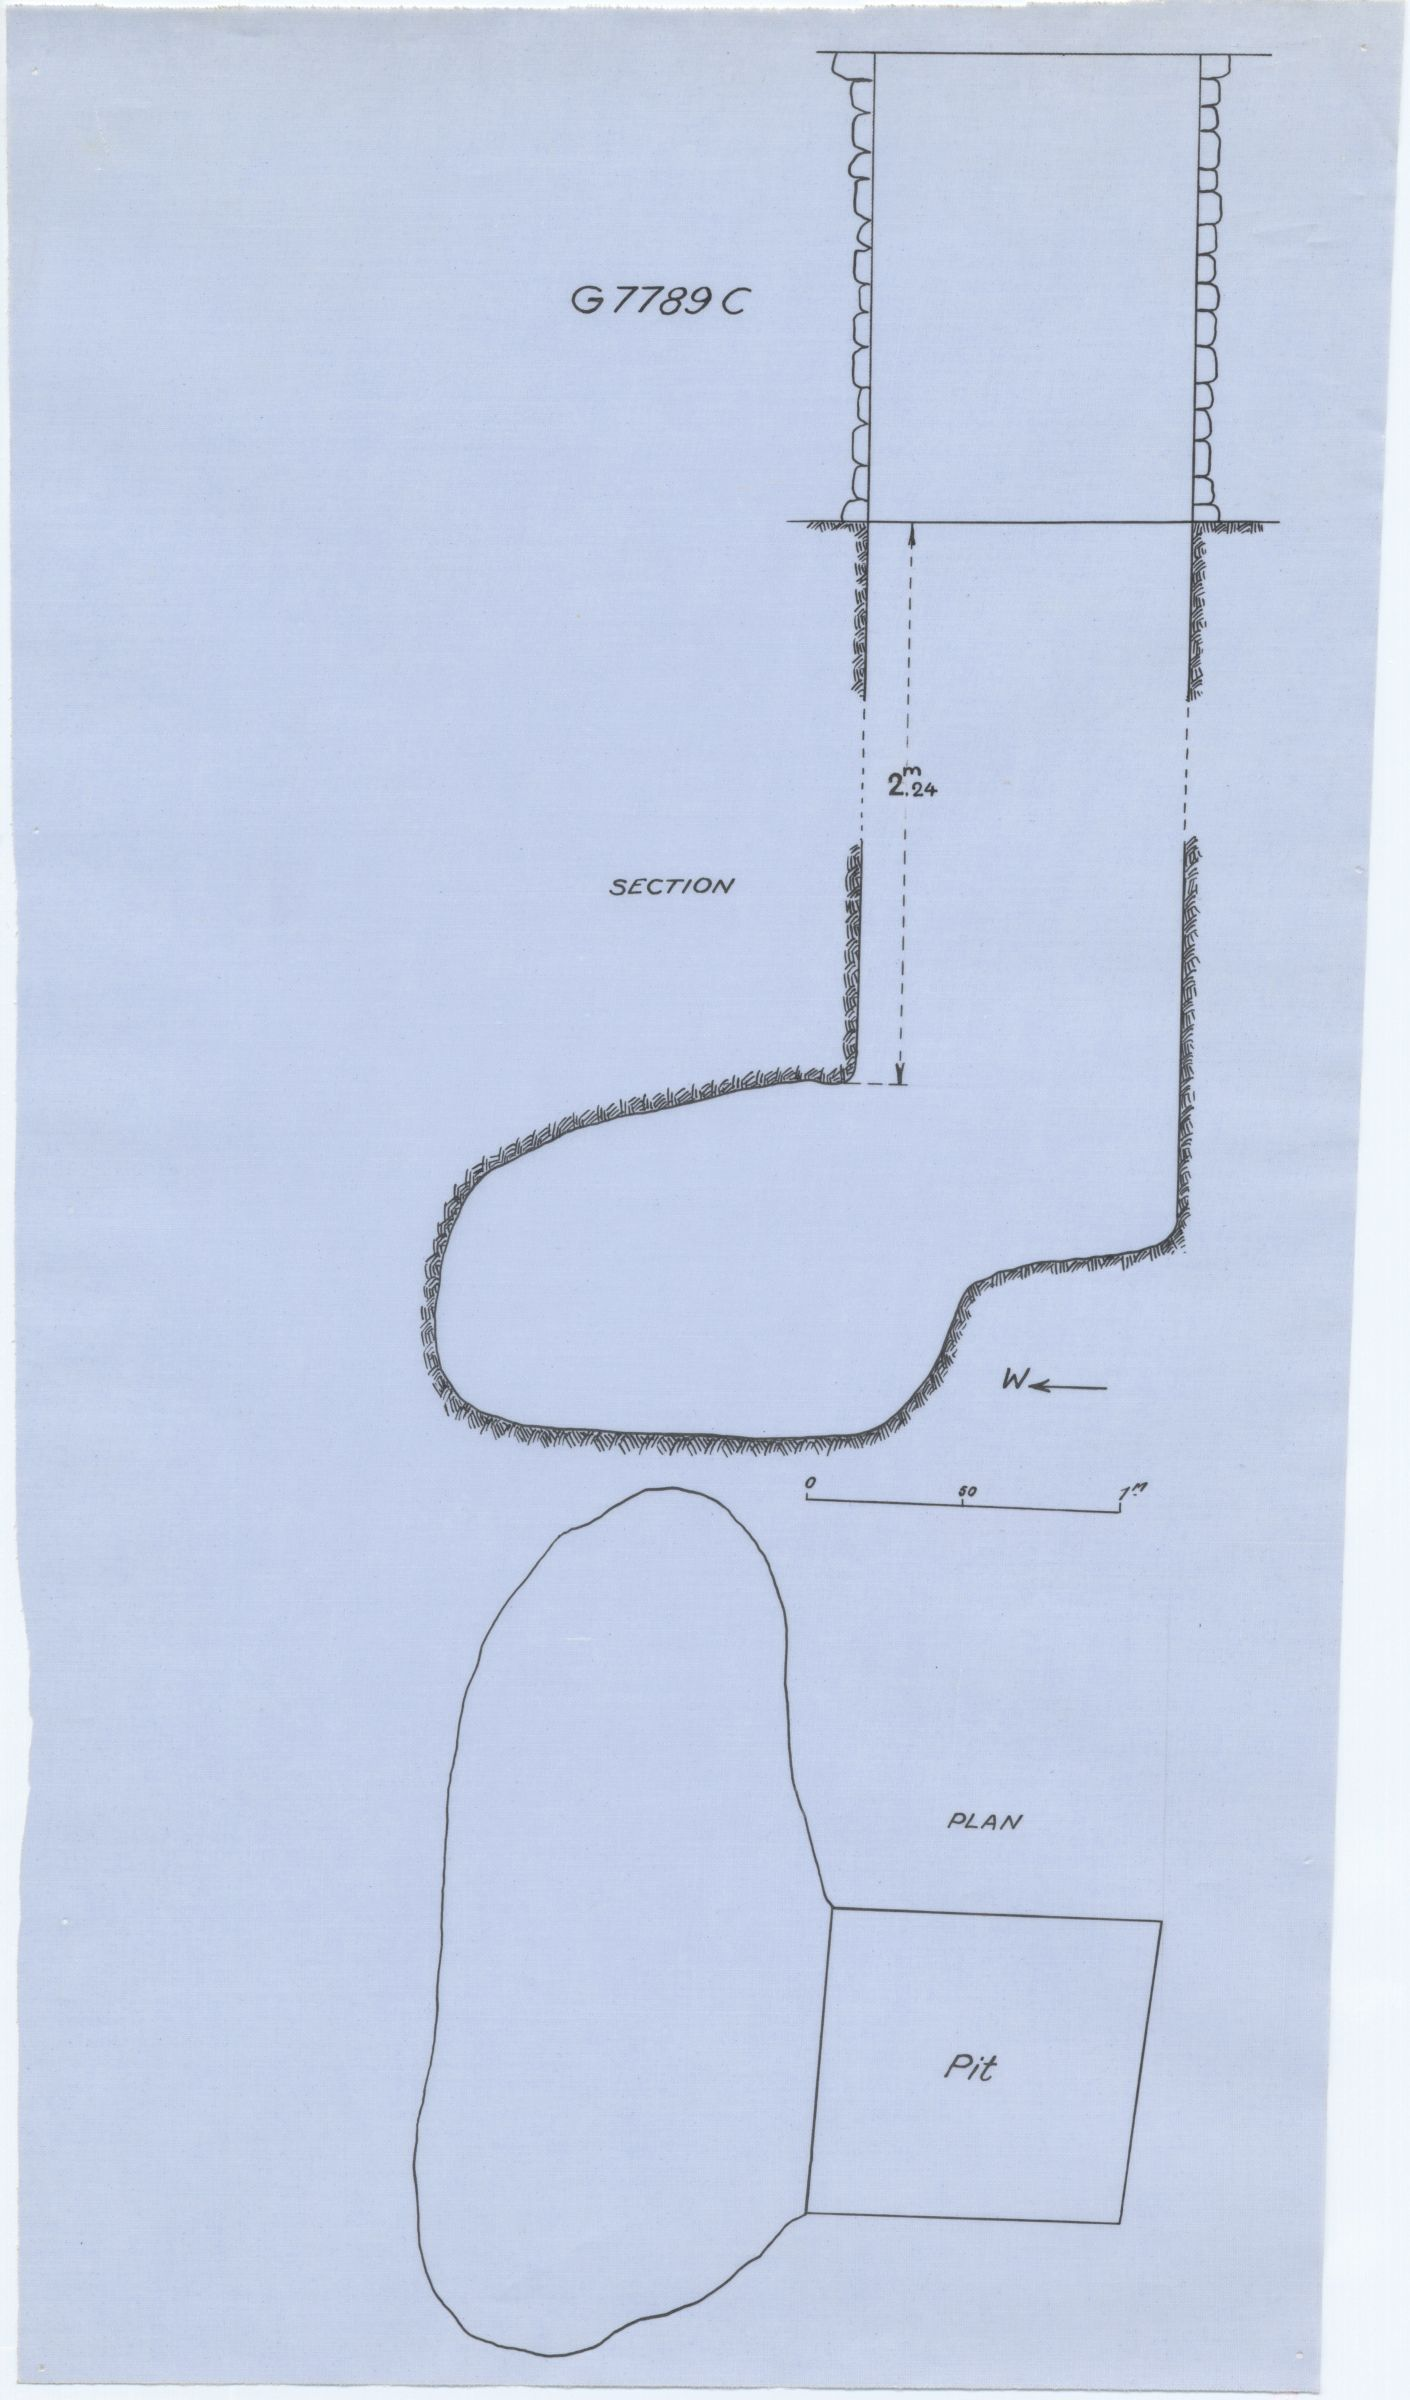 Maps and plans: G 7789, Shaft C